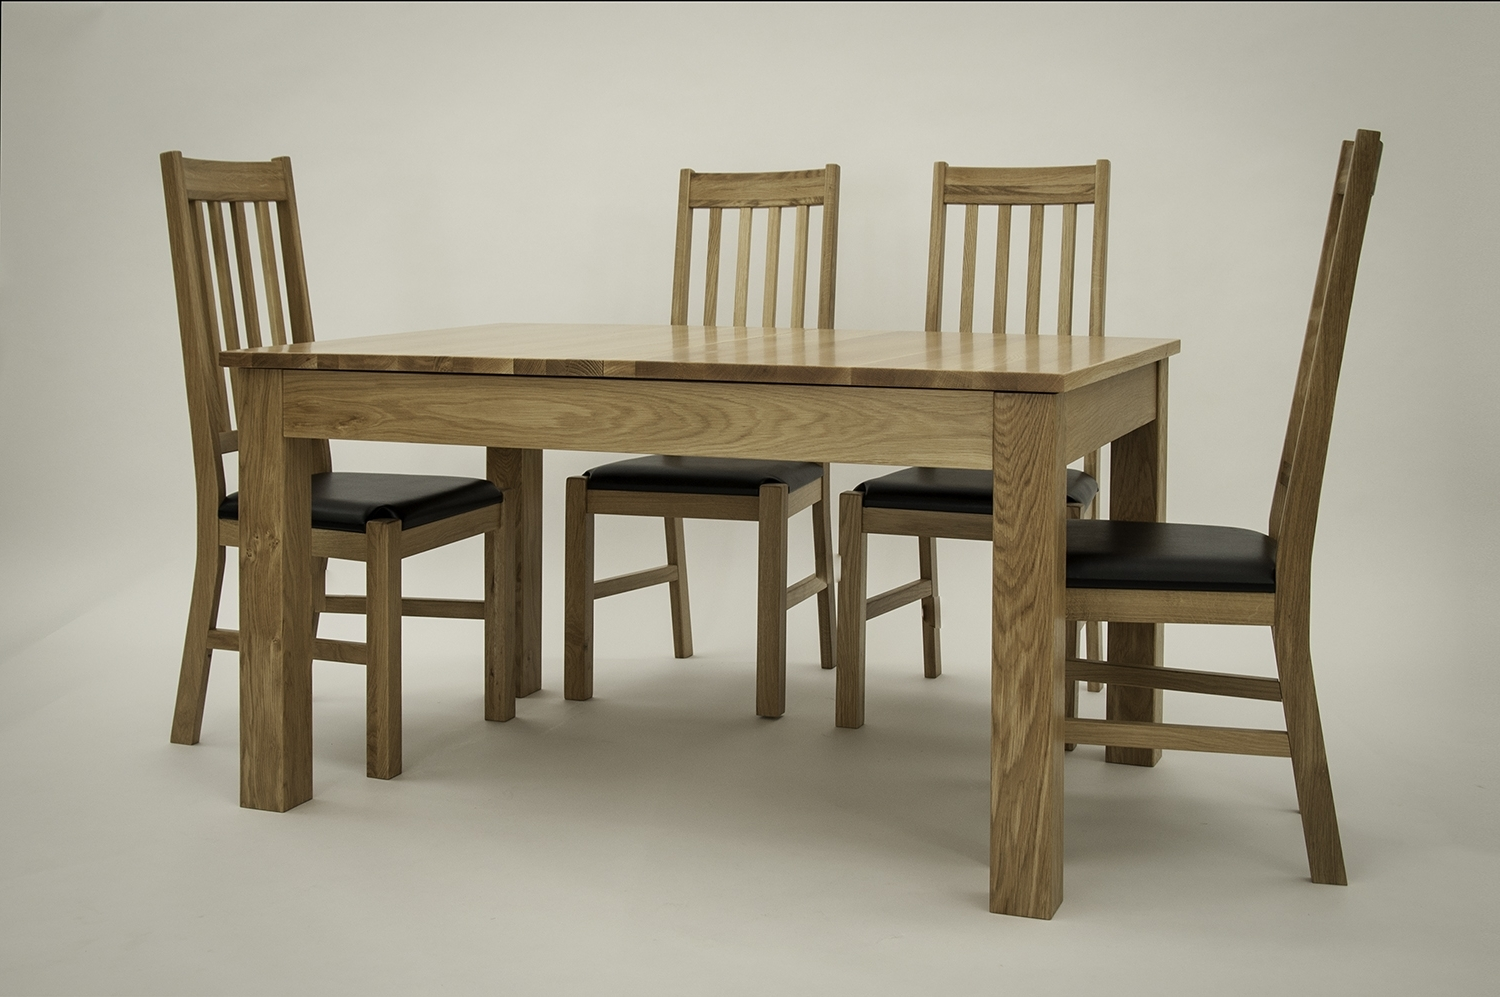 Widely Used Extending Oak Dining Table Set With 6 Or 8 Chairs, Oak Extending For Oak Extending Dining Tables And 8 Chairs (View 5 of 25)